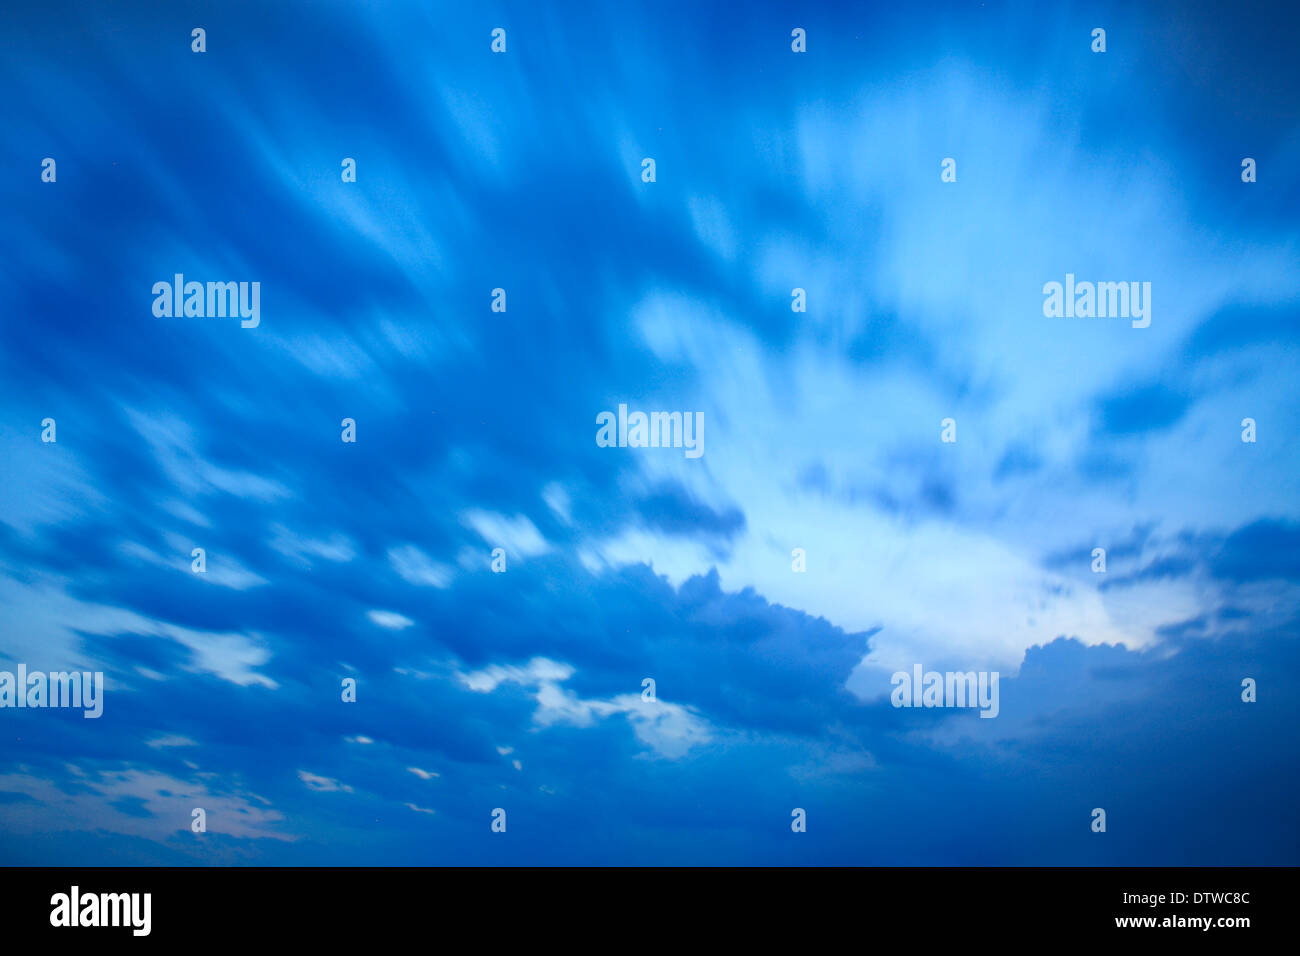 Sky And Cloud Scene, A Blue And Restive Twilight Cloudscape In Motion Blur - Stock Image